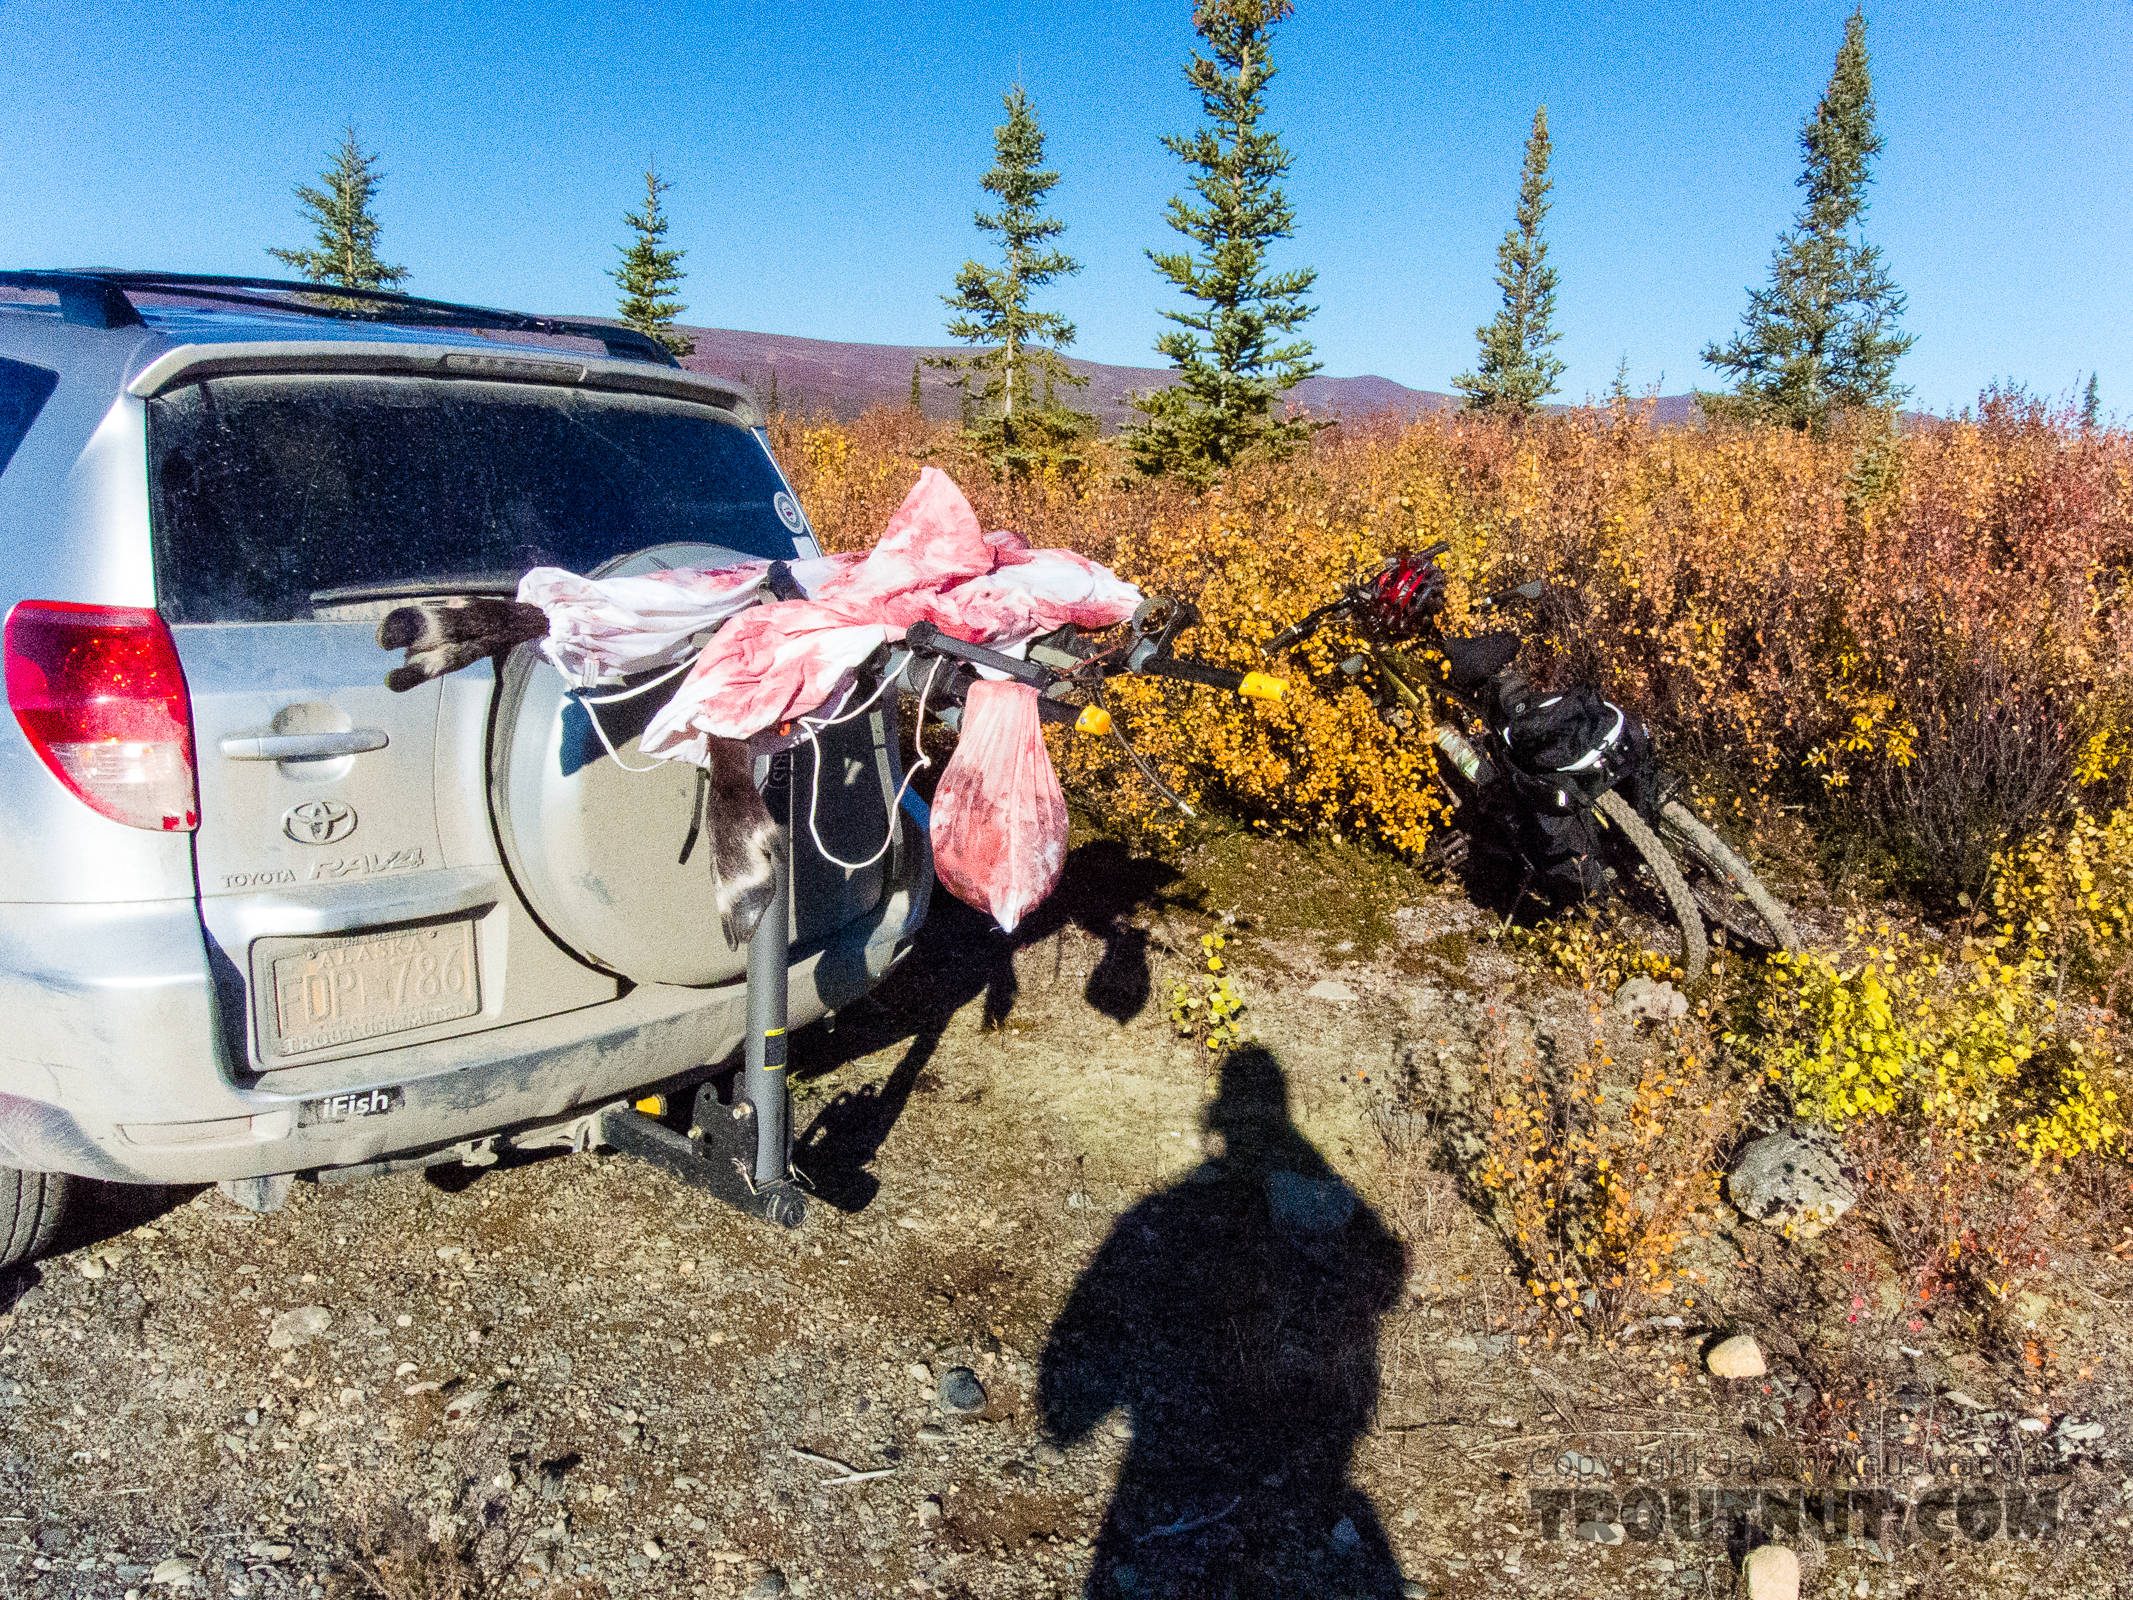 First haul of meat. After getting the meat back to the road, I stashed the hind quarters and burger/rib meat bag in an alder thicket. I took these two front quarters and tenderloins/backstraps out with me on an after-dark bike ride 3 miles downhill to the car. My awesome 172-lumen ZebraLight H51W headlamp lit up the trail almost like a car headlight for me and Lena to make the ride. From Clearwater Mountains in Alaska.